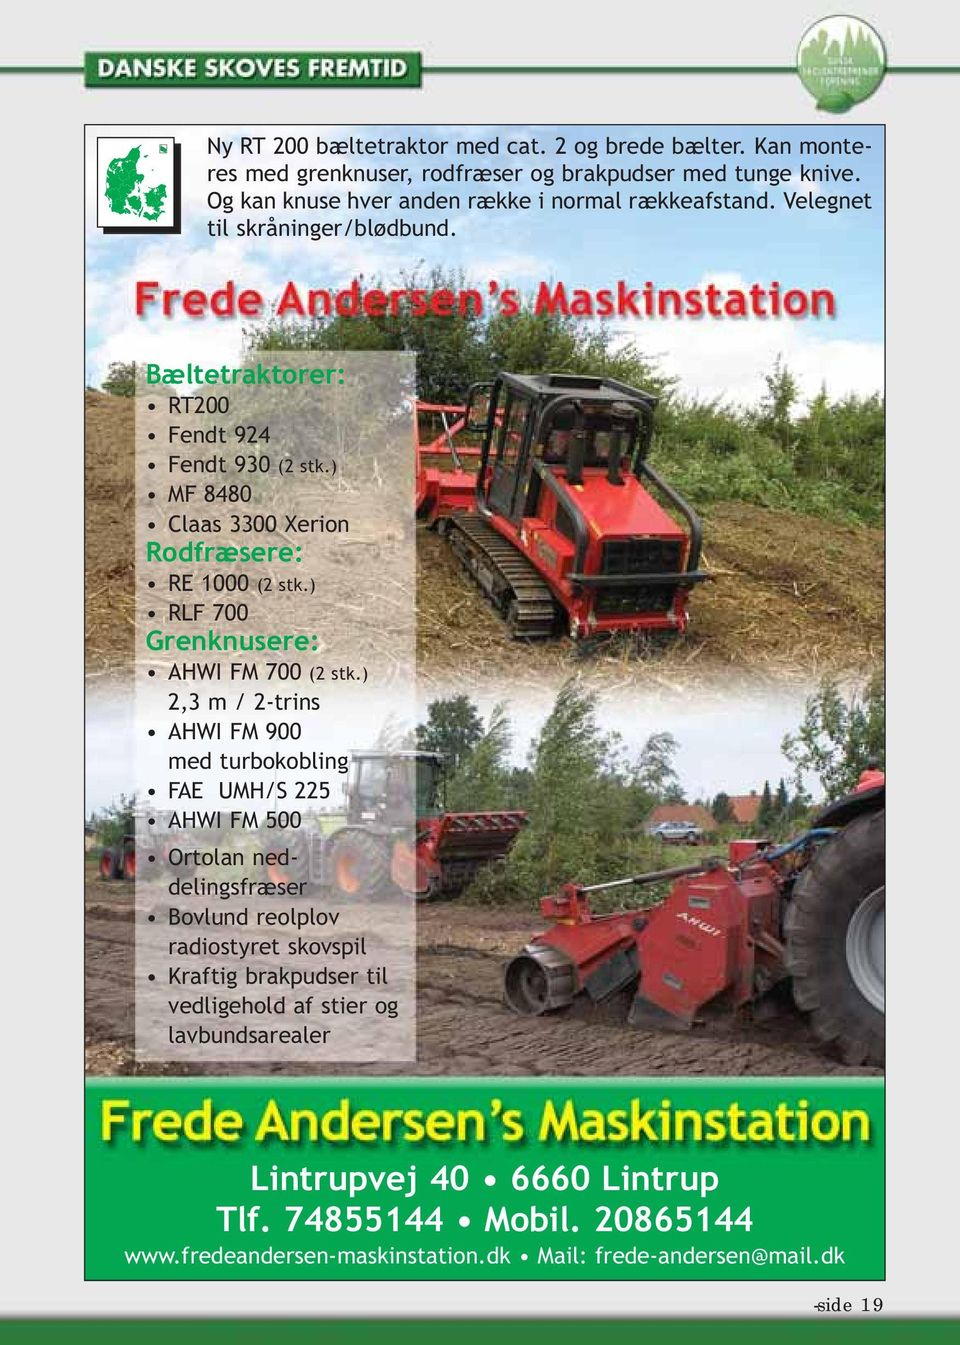 ) MF 8480 Claas 3300 Xerion Rodfræsere: RE 1000 (2 stk.) RLF 700 Grenknusere: AHWI FM 700 (2 stk.